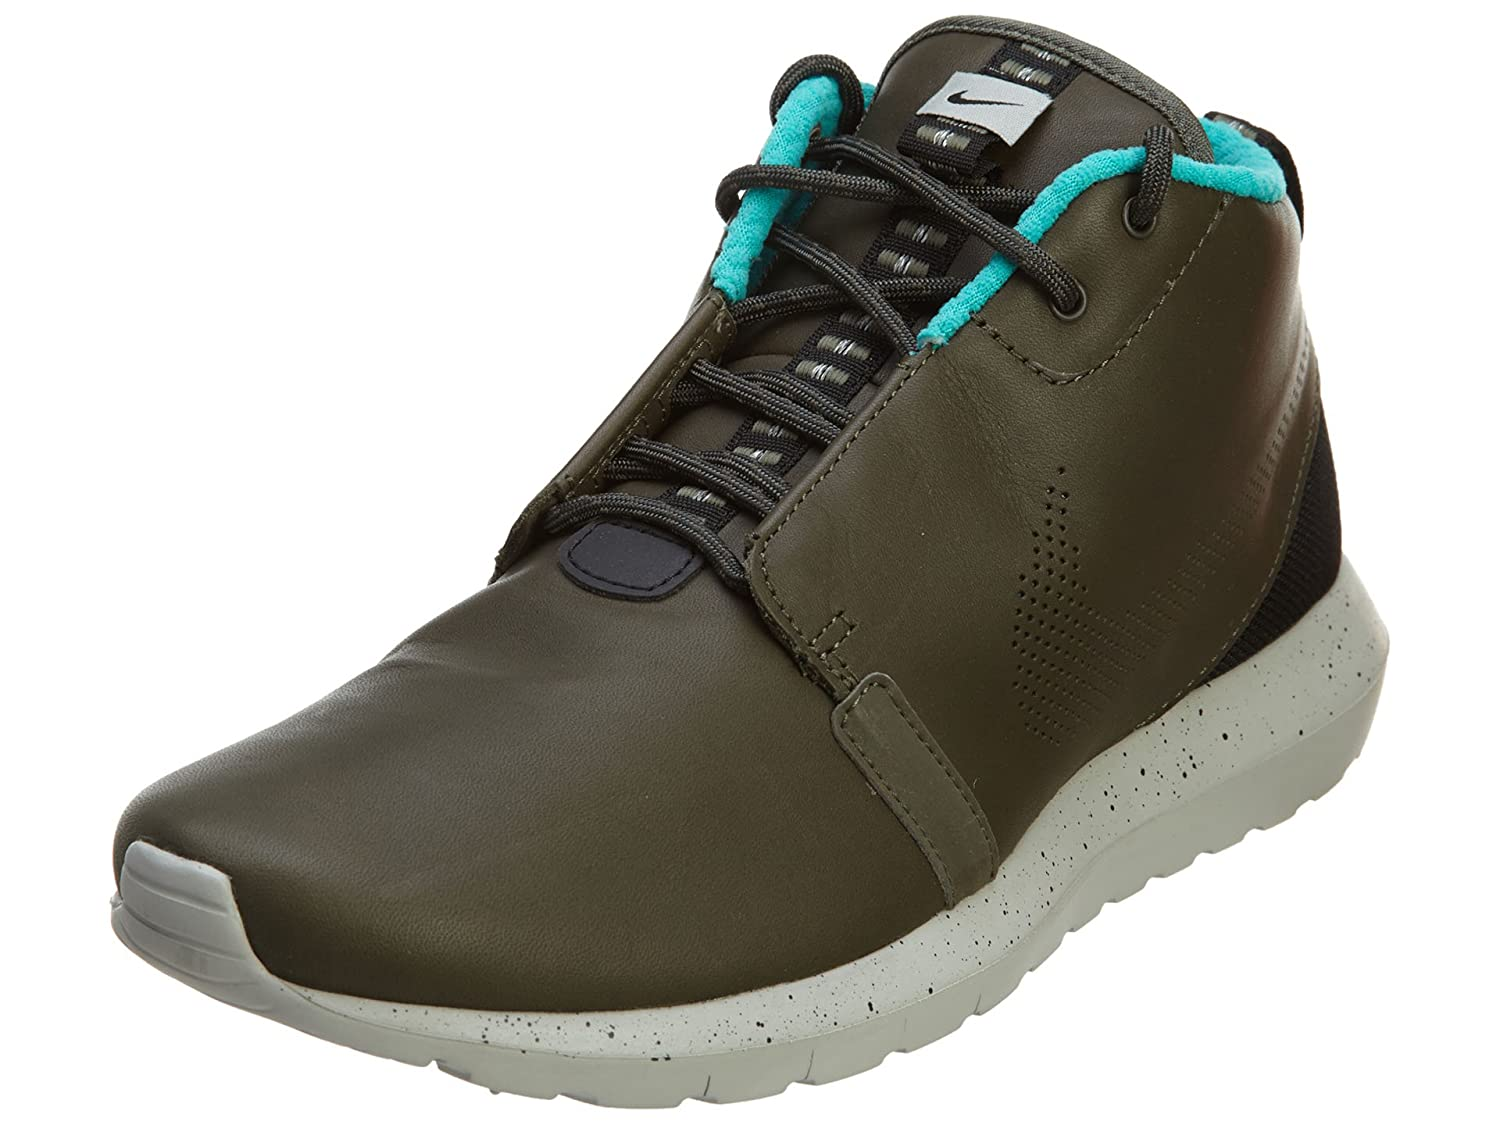 newest 9031e 8d94b Amazon.com   Nike Mens Rosherun NM Sneakerboot Premium Boots Cargo  684704-300   Fashion Sneakers